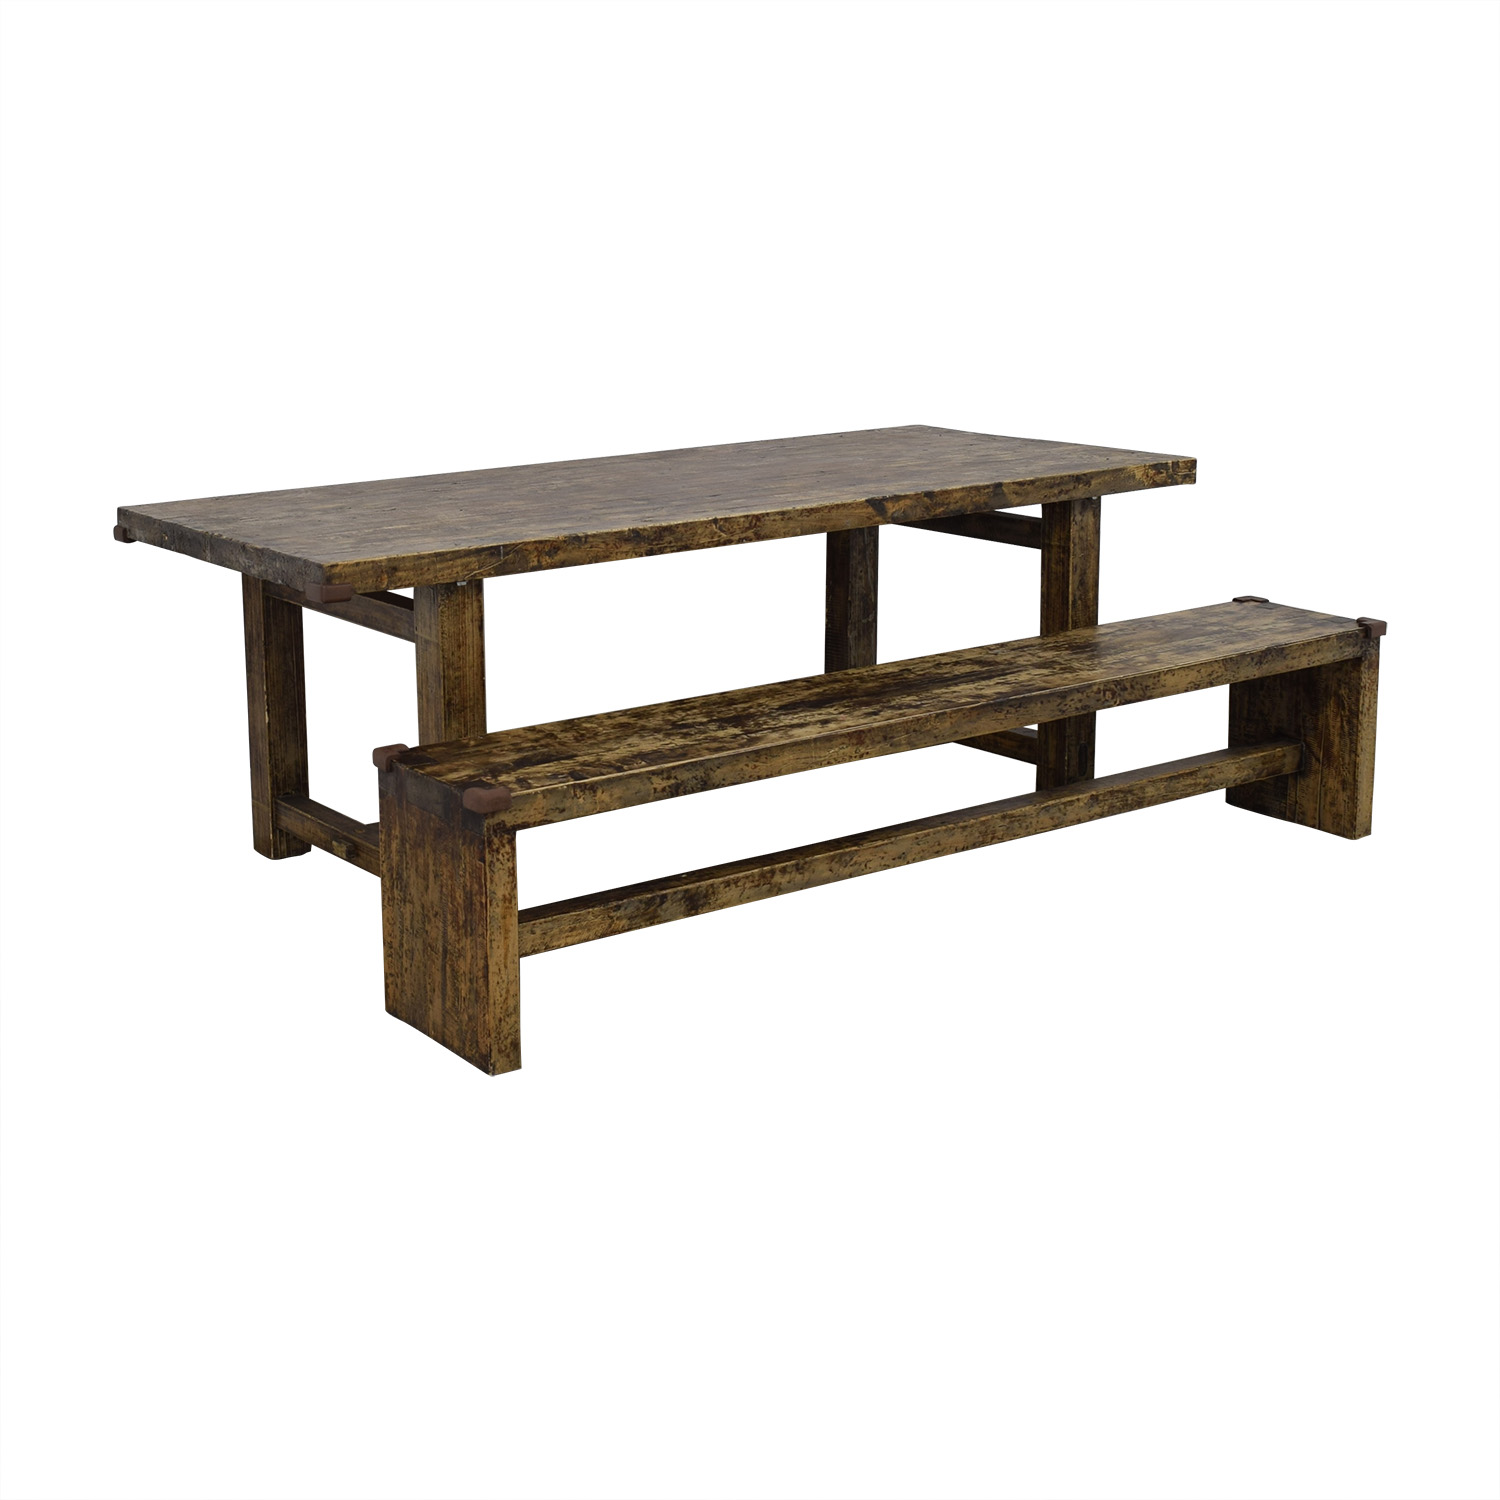 Rustic Farm Dining Table with Bench